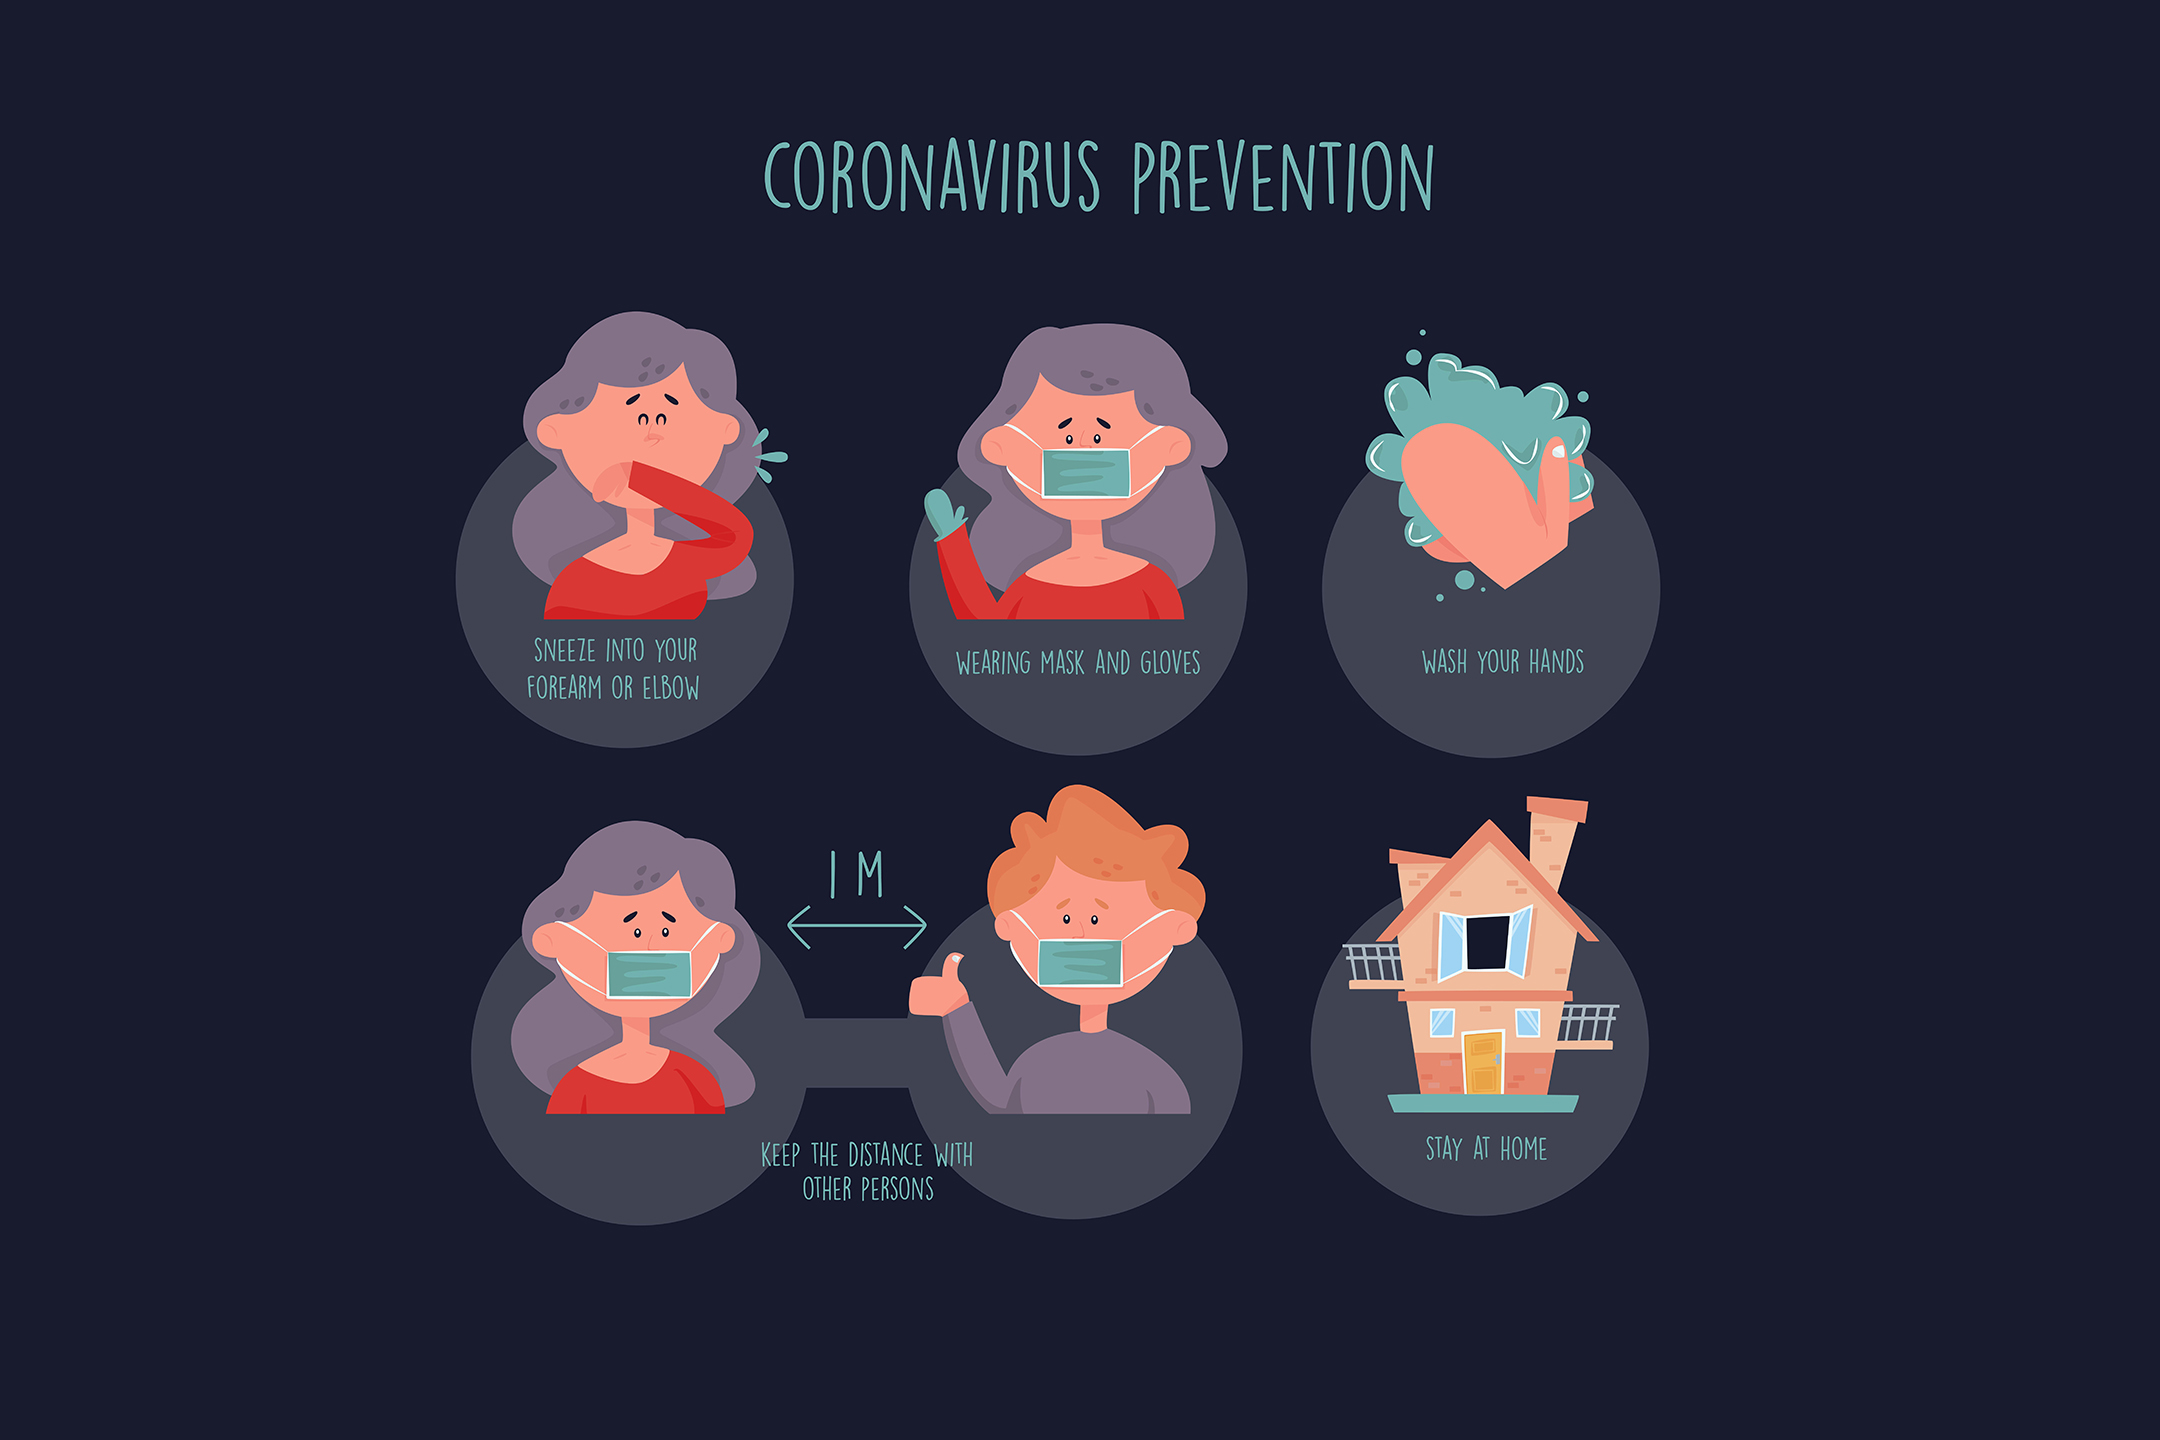 Coronavirus Prevention Tips Template Graphic By Aprlmp276